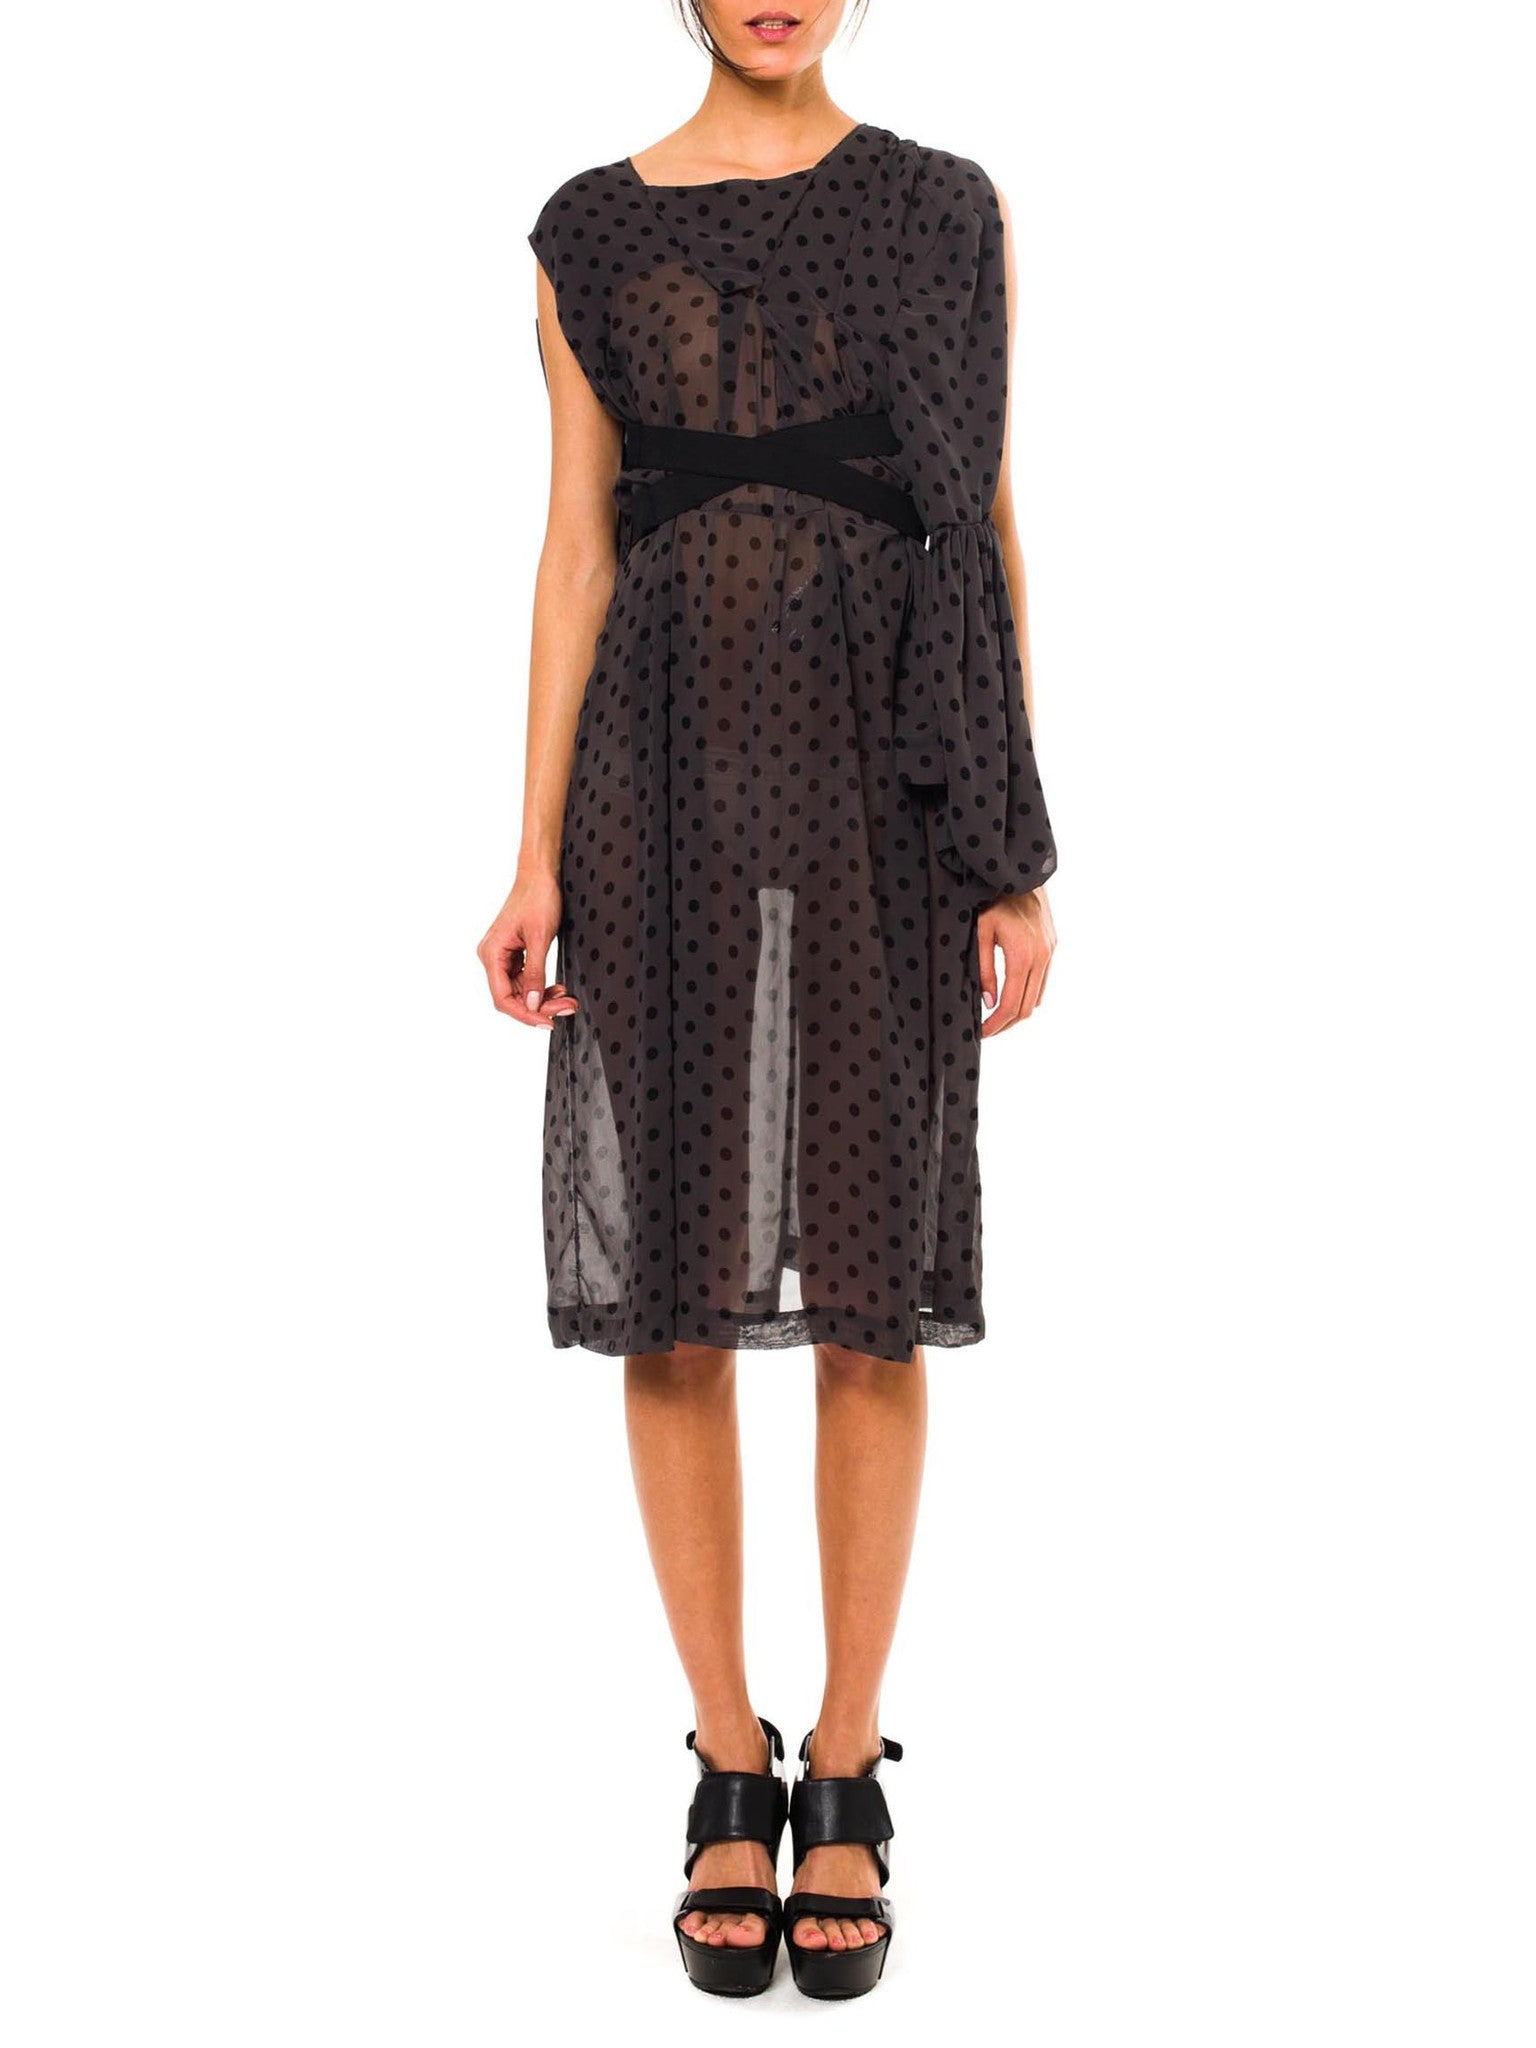 COMMES des GARCONS  Deconstructed Chiffon Dress